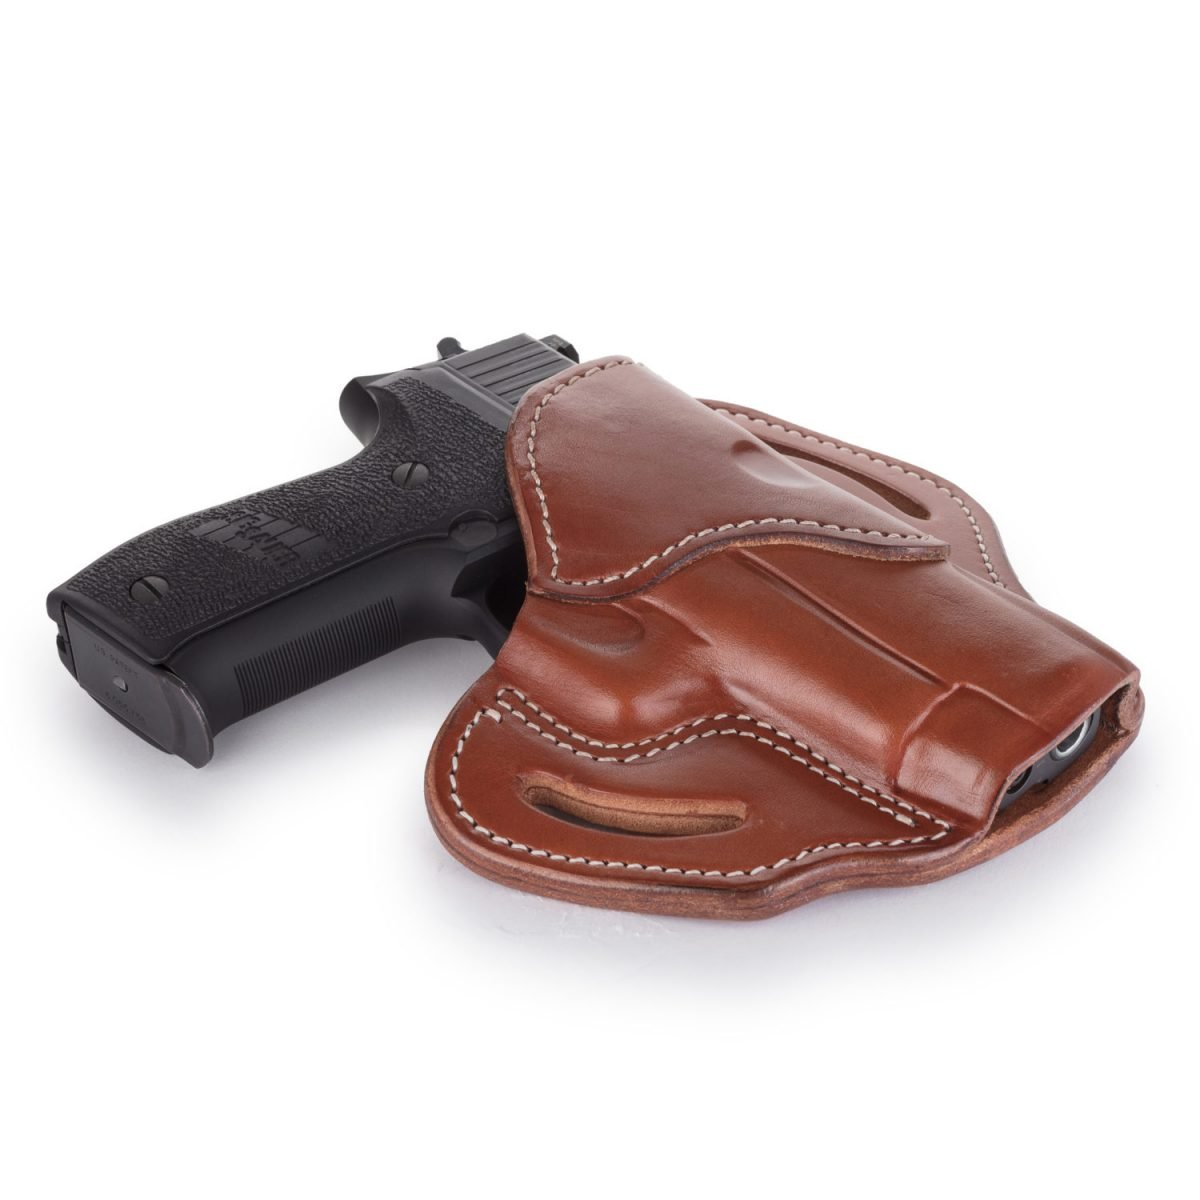 BH2 3 – Open Top Multi-Fit Belt Holster